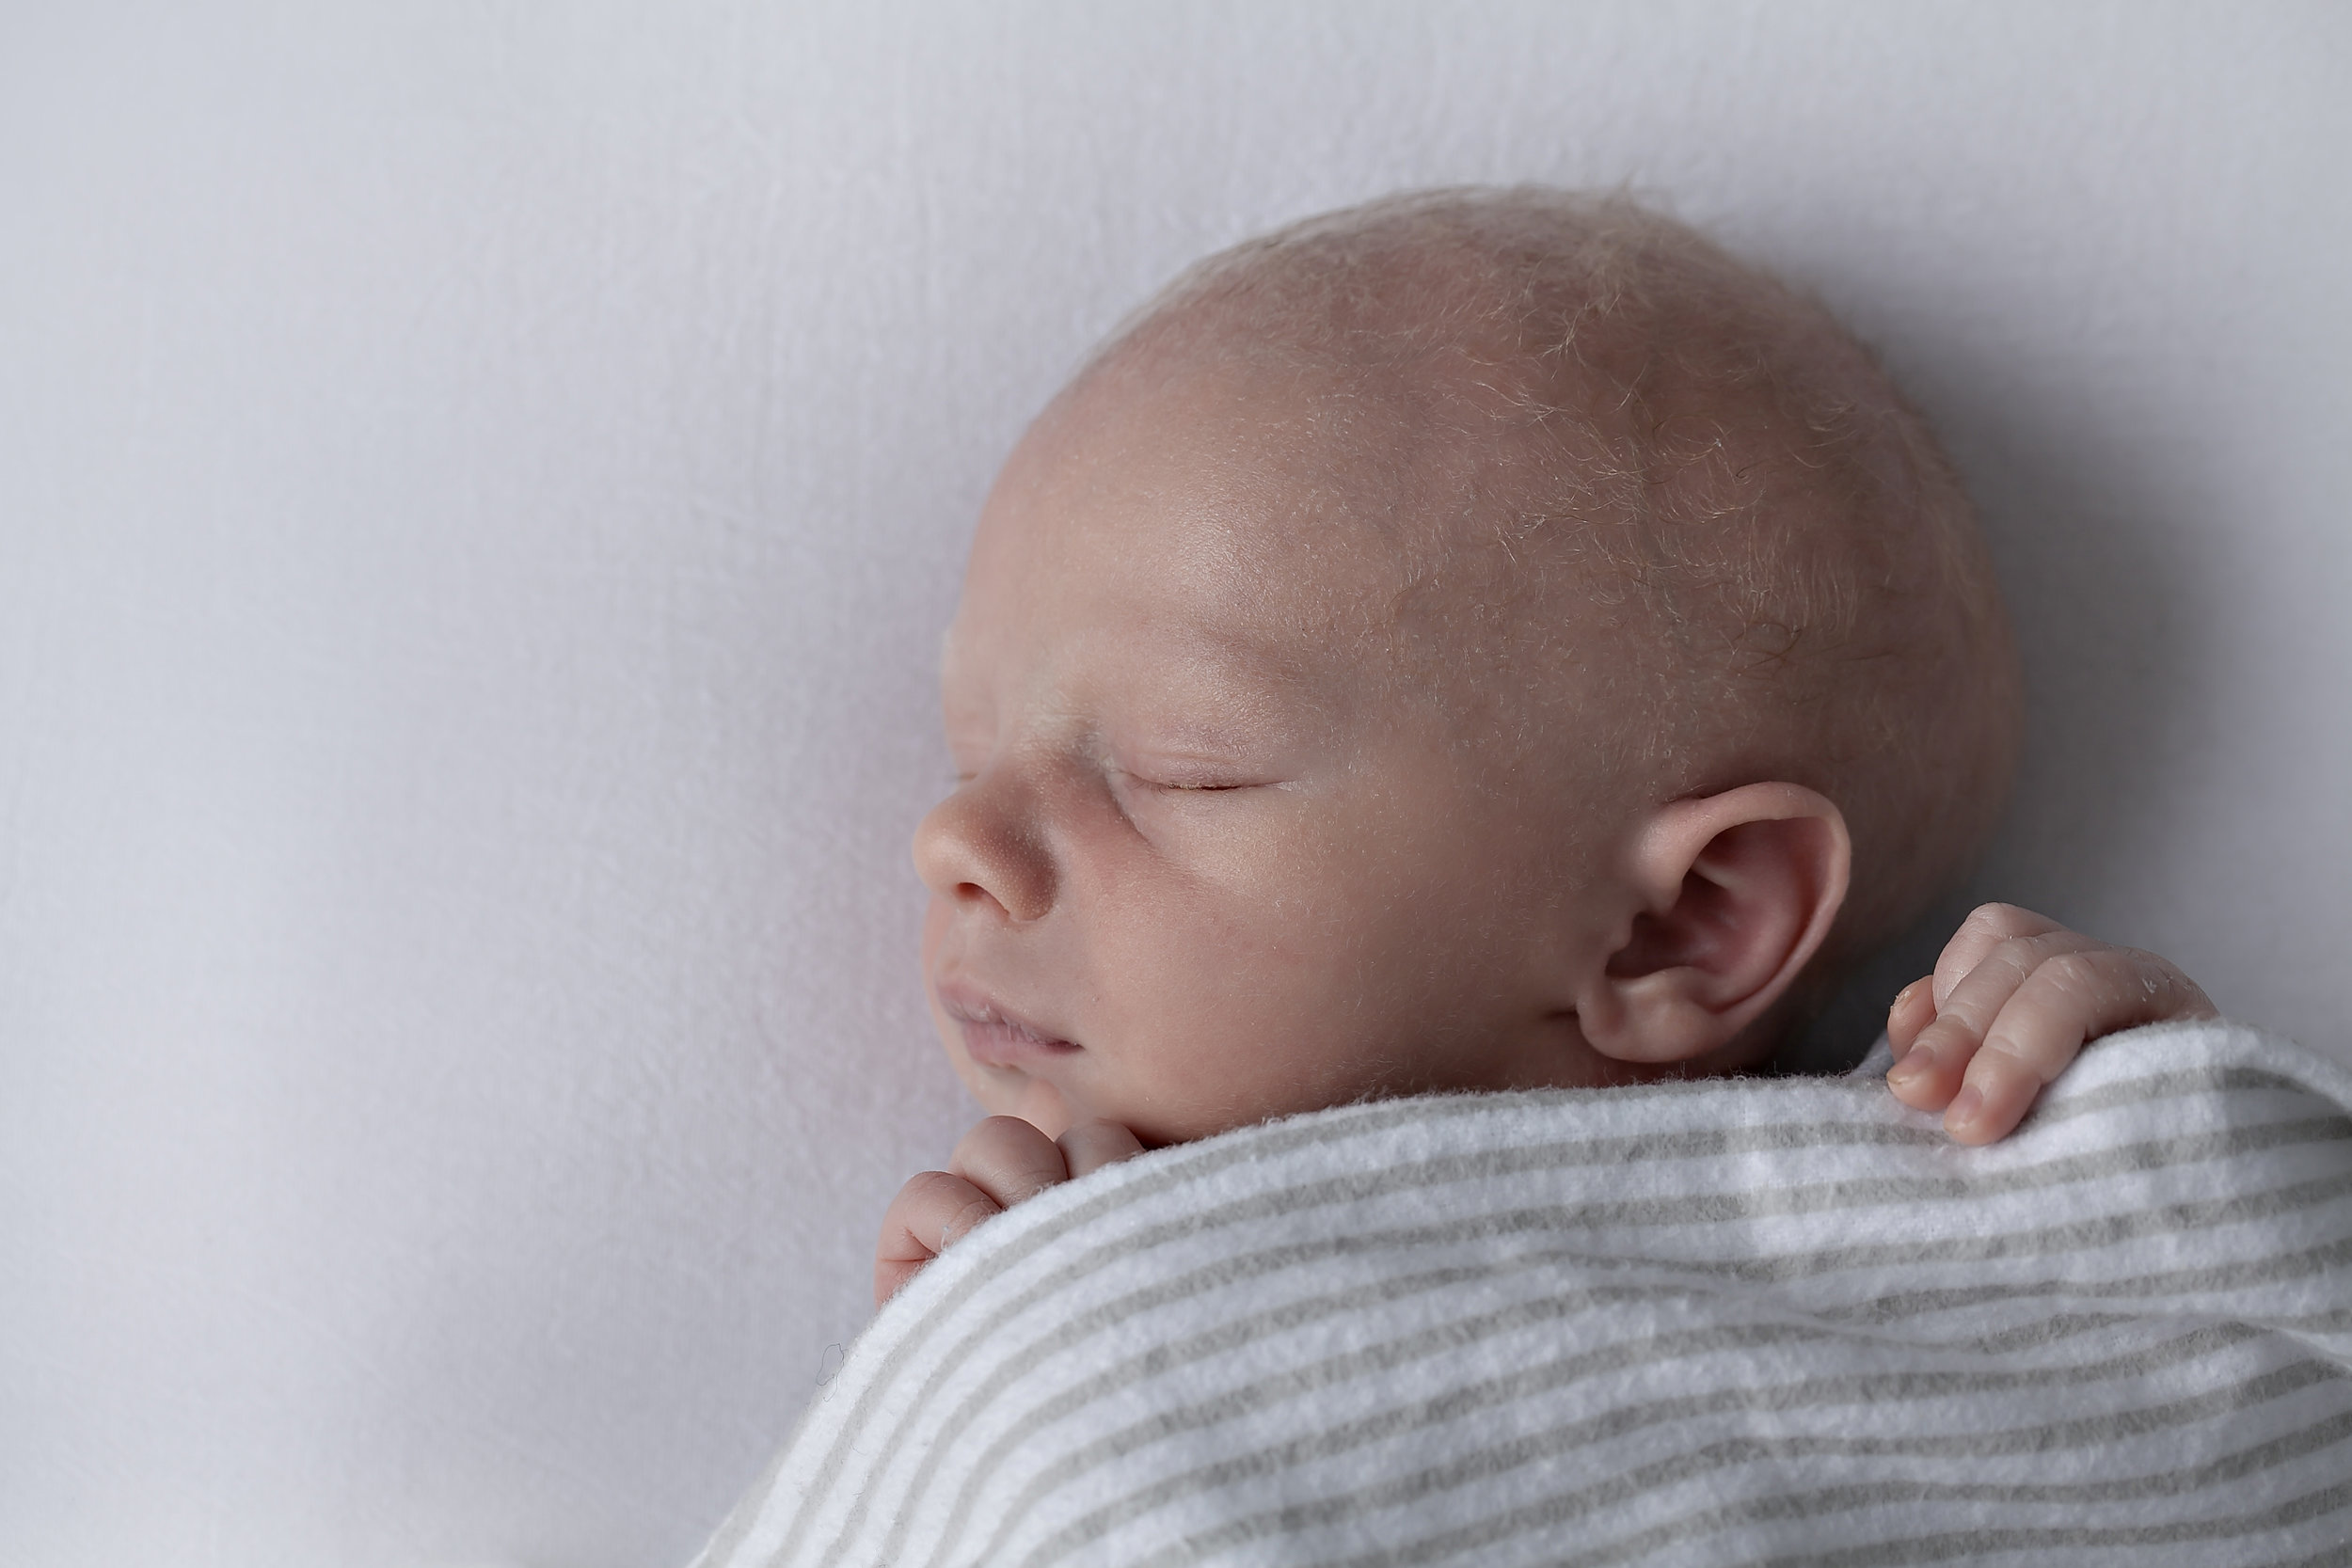 Oshawa_Newborn_Baby_Boy_Aidebodycare